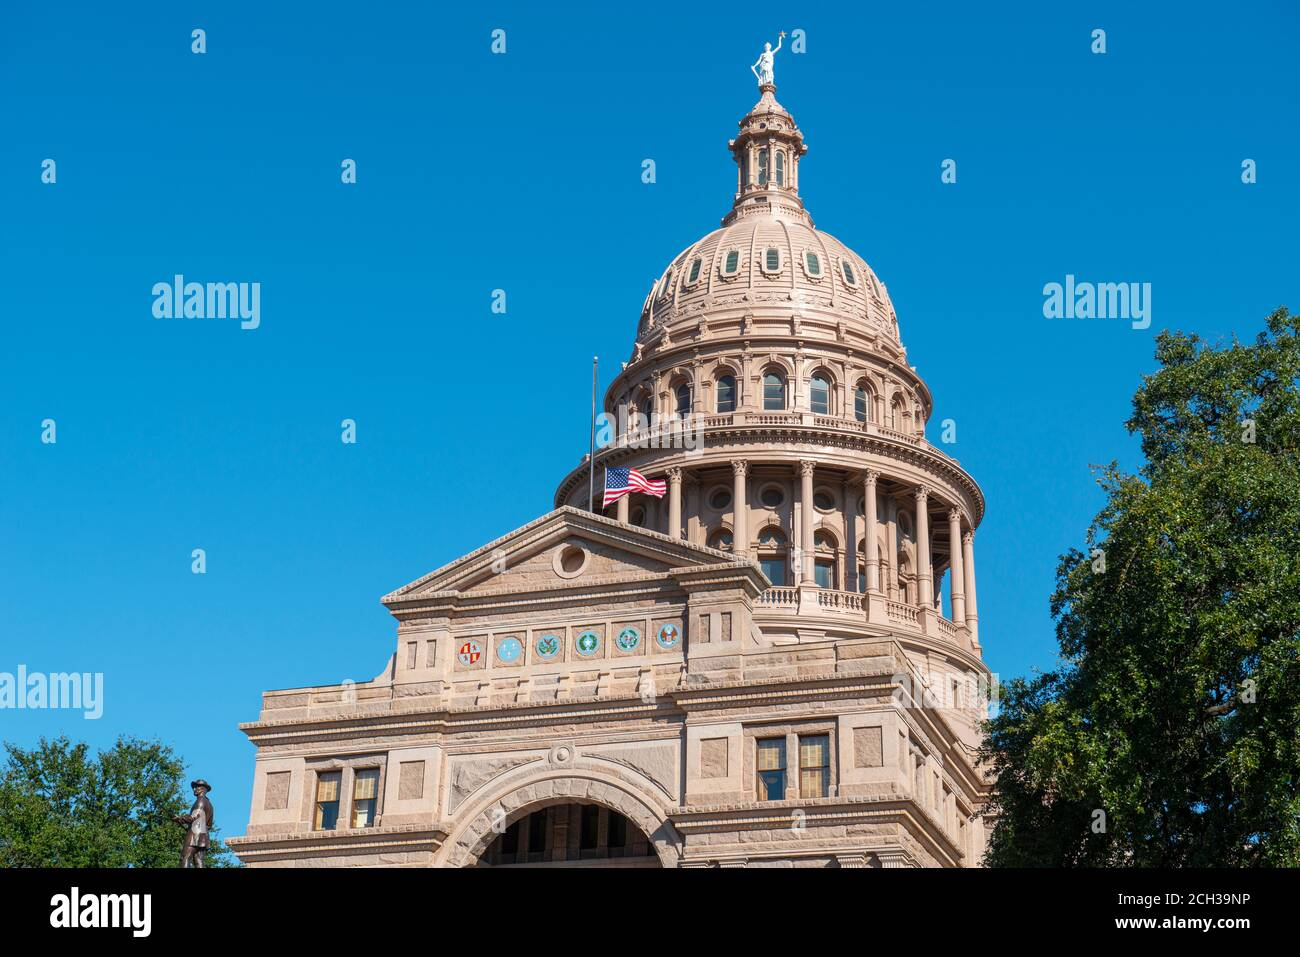 Texas State Capitol is the capitol building and seat of government of Texas in downtown Austin, Texas TX, USA. Stock Photo